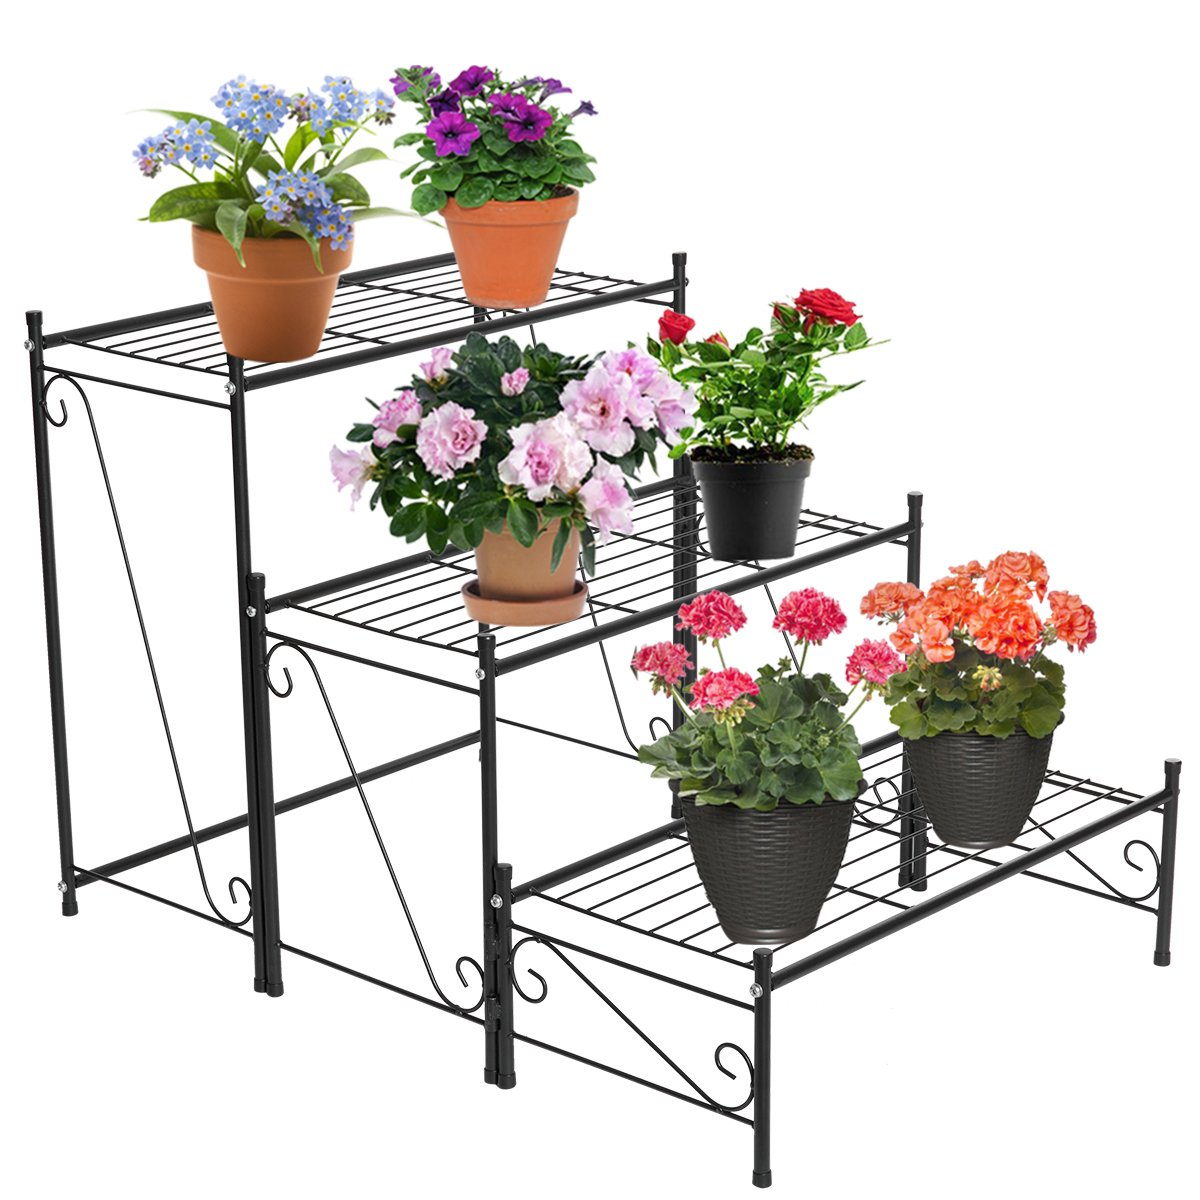 DOEWORKS Metal Plant Shelf, 3 Tier Patio Iron Plant Stand for or Large Flower Pot Outdoor Indoor